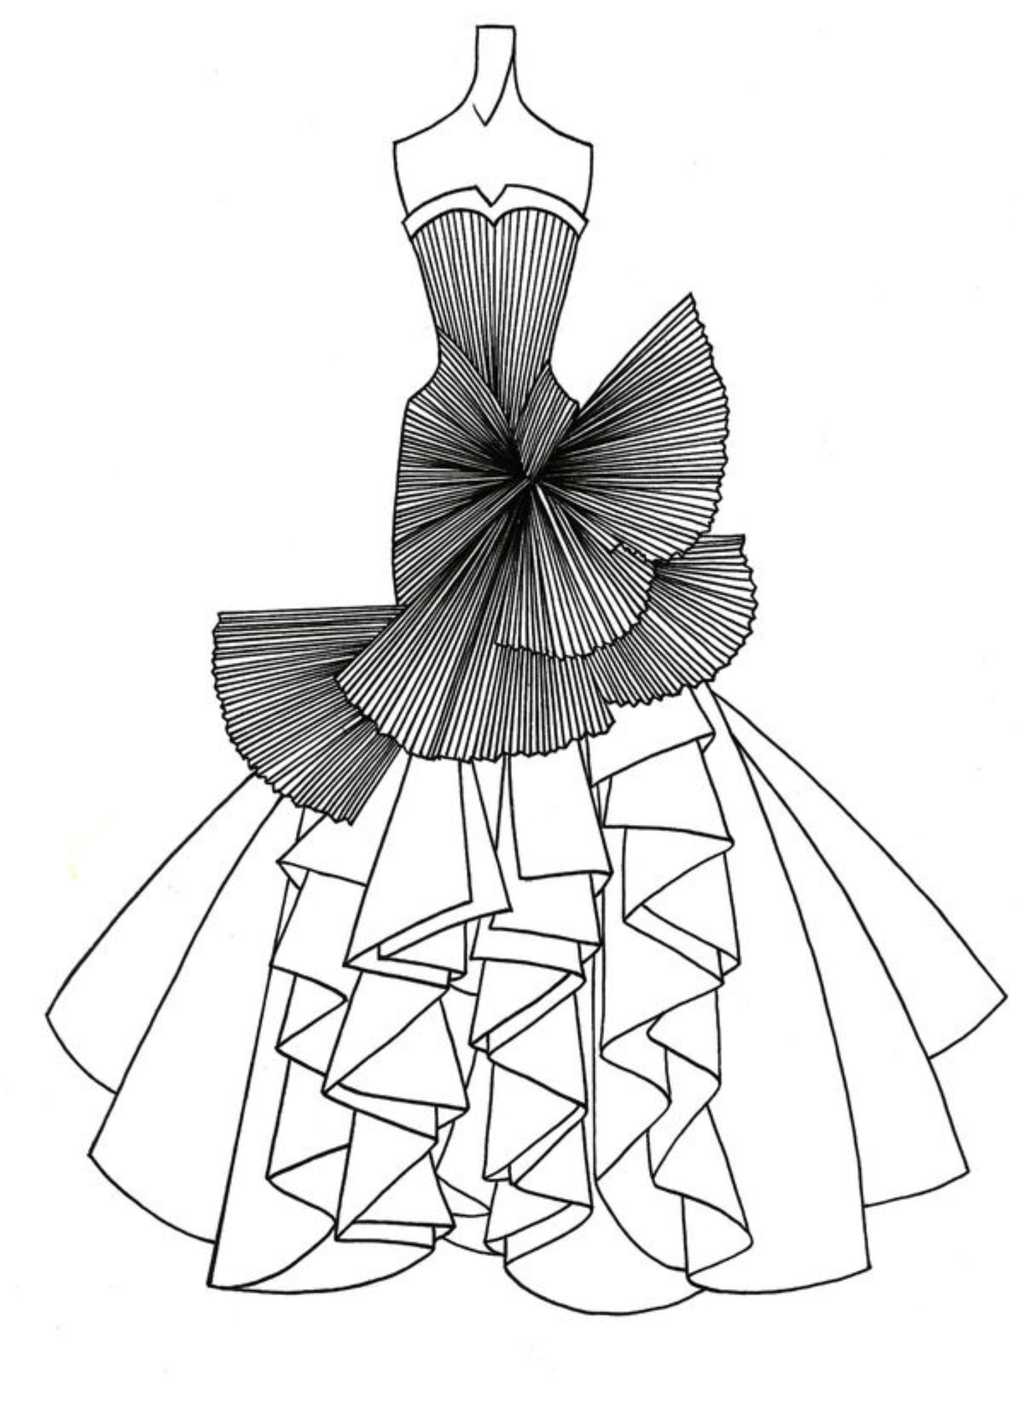 21 grayscale coloring pages selection free coloring pages Grayscale coloring books for adults